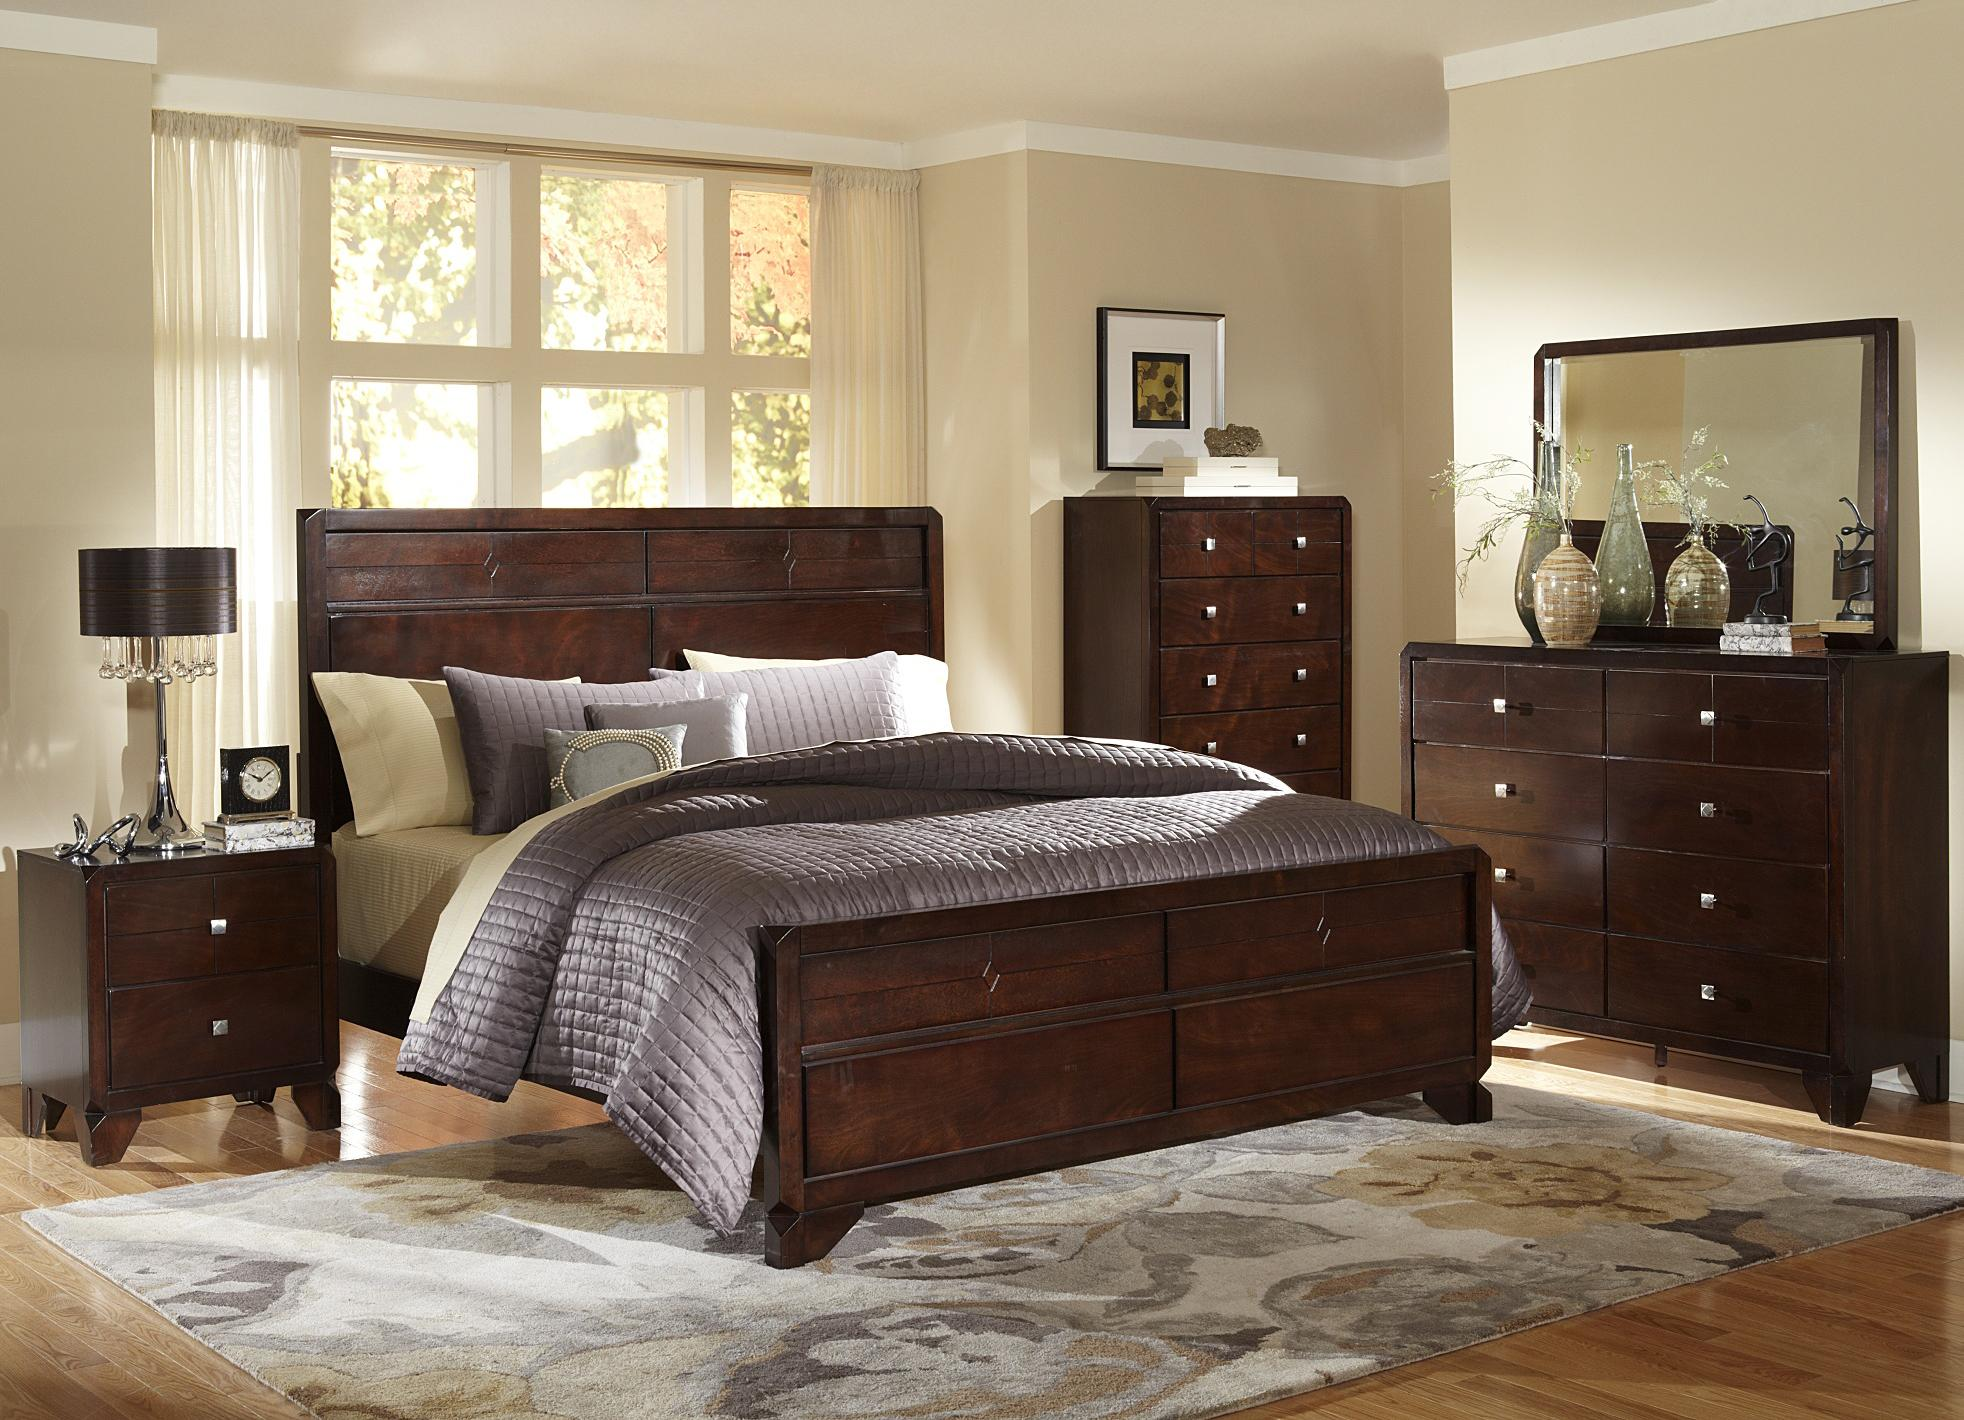 Lifestyle 2180A Queen Bedroom Group - Item Number: 2180 Bedroom Group 1